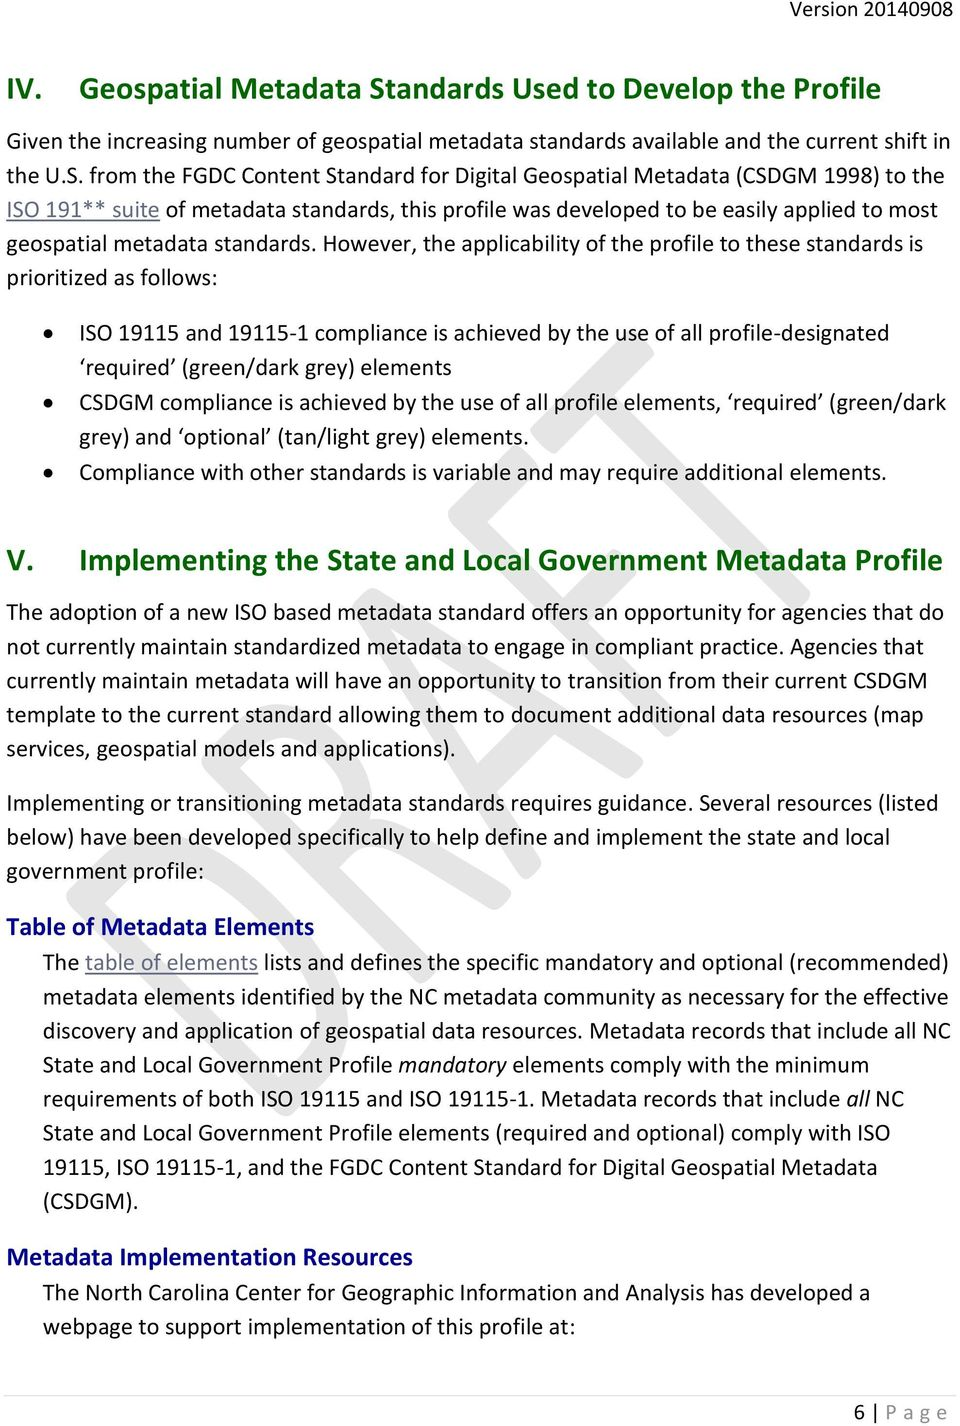 from the FGDC Content Standard for Digital Geospatial Metadata (CSDGM 1998) to the ISO 191** suite of metadata standards, this profile was developed to be easily applied to most geospatial metadata